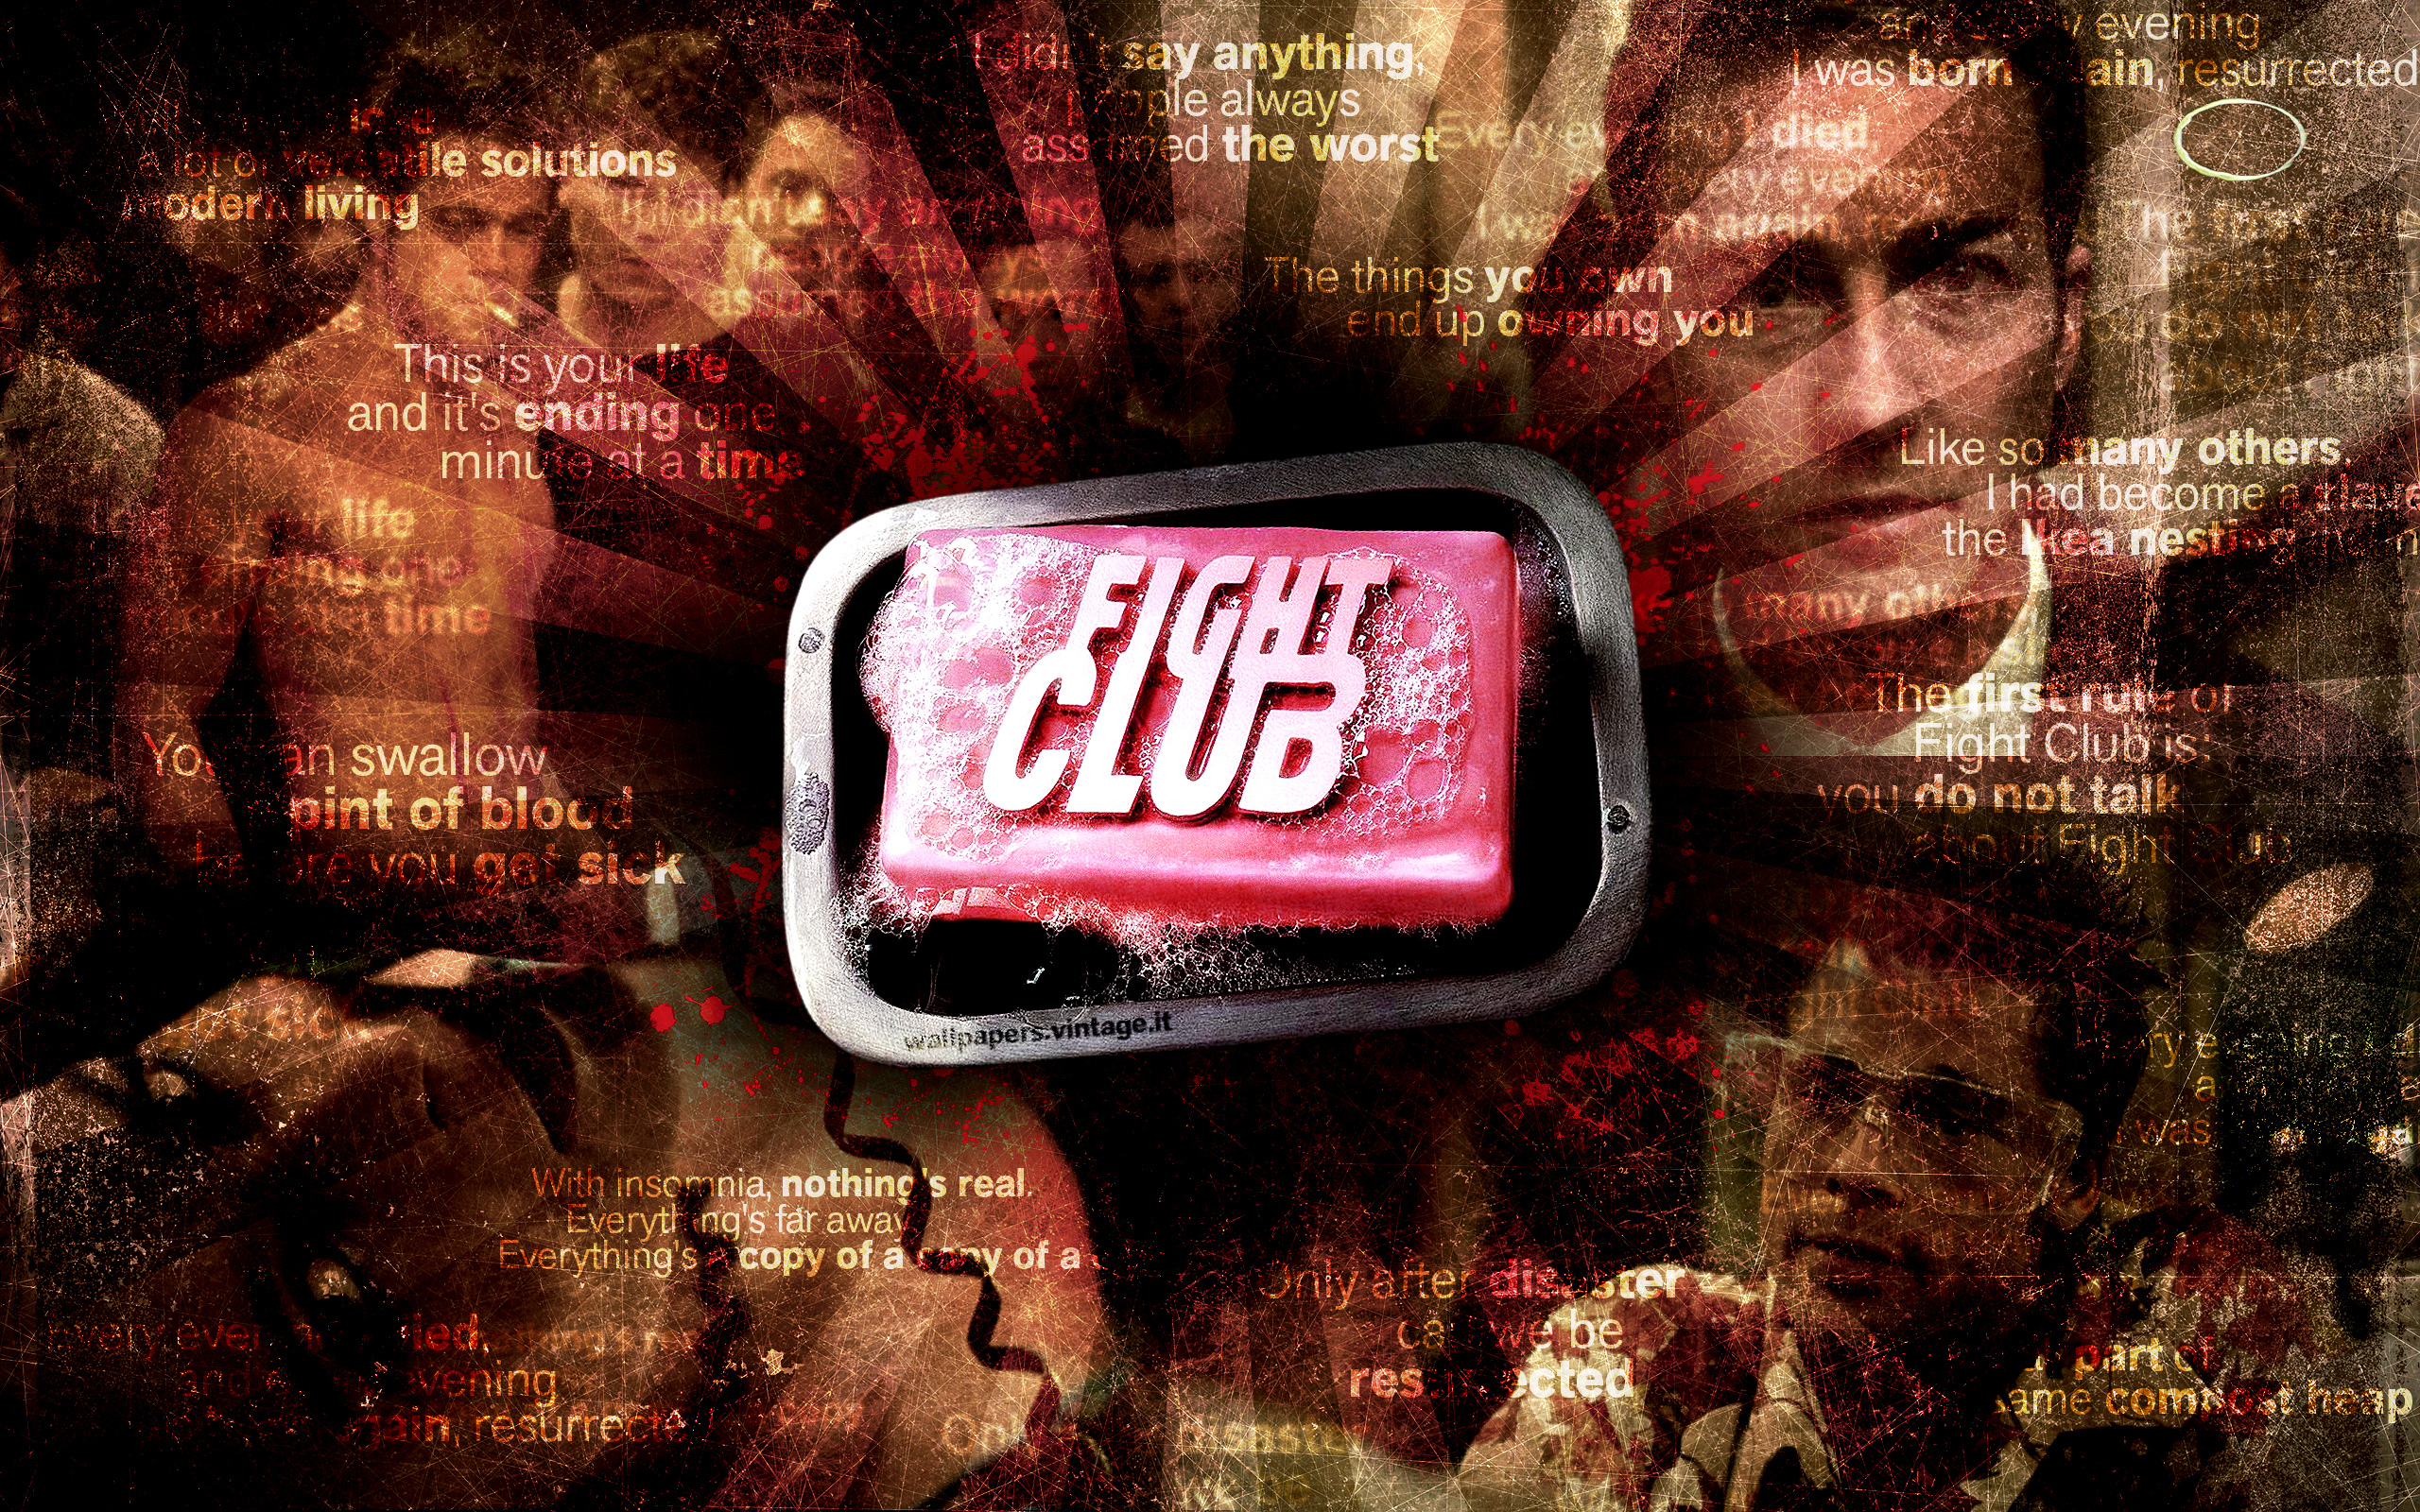 fight club the movie essay on techniques used Learn the major plot points and story structure of fight club directed by david   of the truth of the film: that there's actually two totally different stories being told   plans and methods—and more and more uncertain of what their relationship.